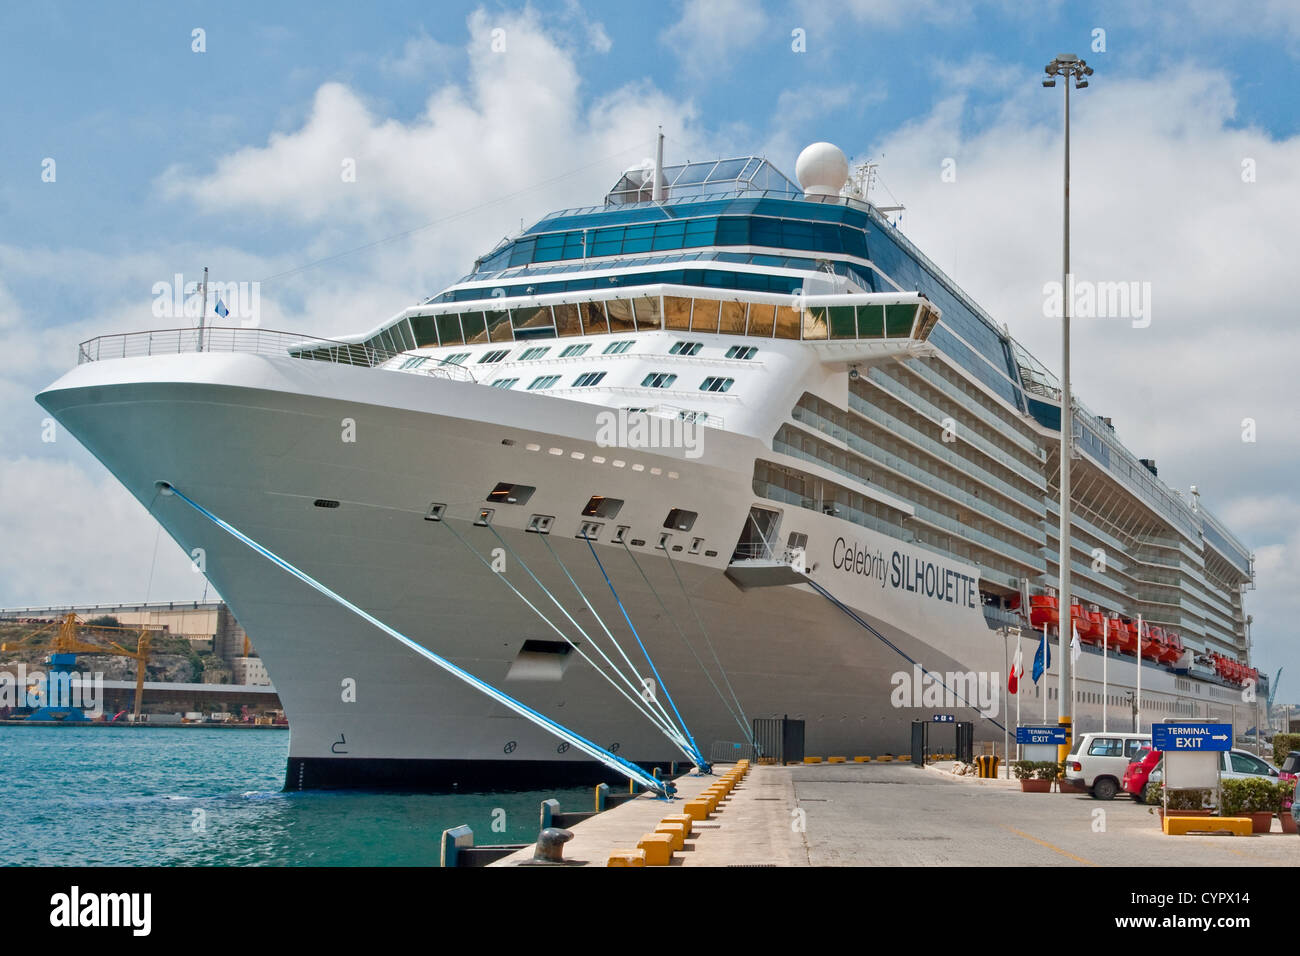 Celebrity Silhouette Cruise Ship from Celebrity Cruise Line